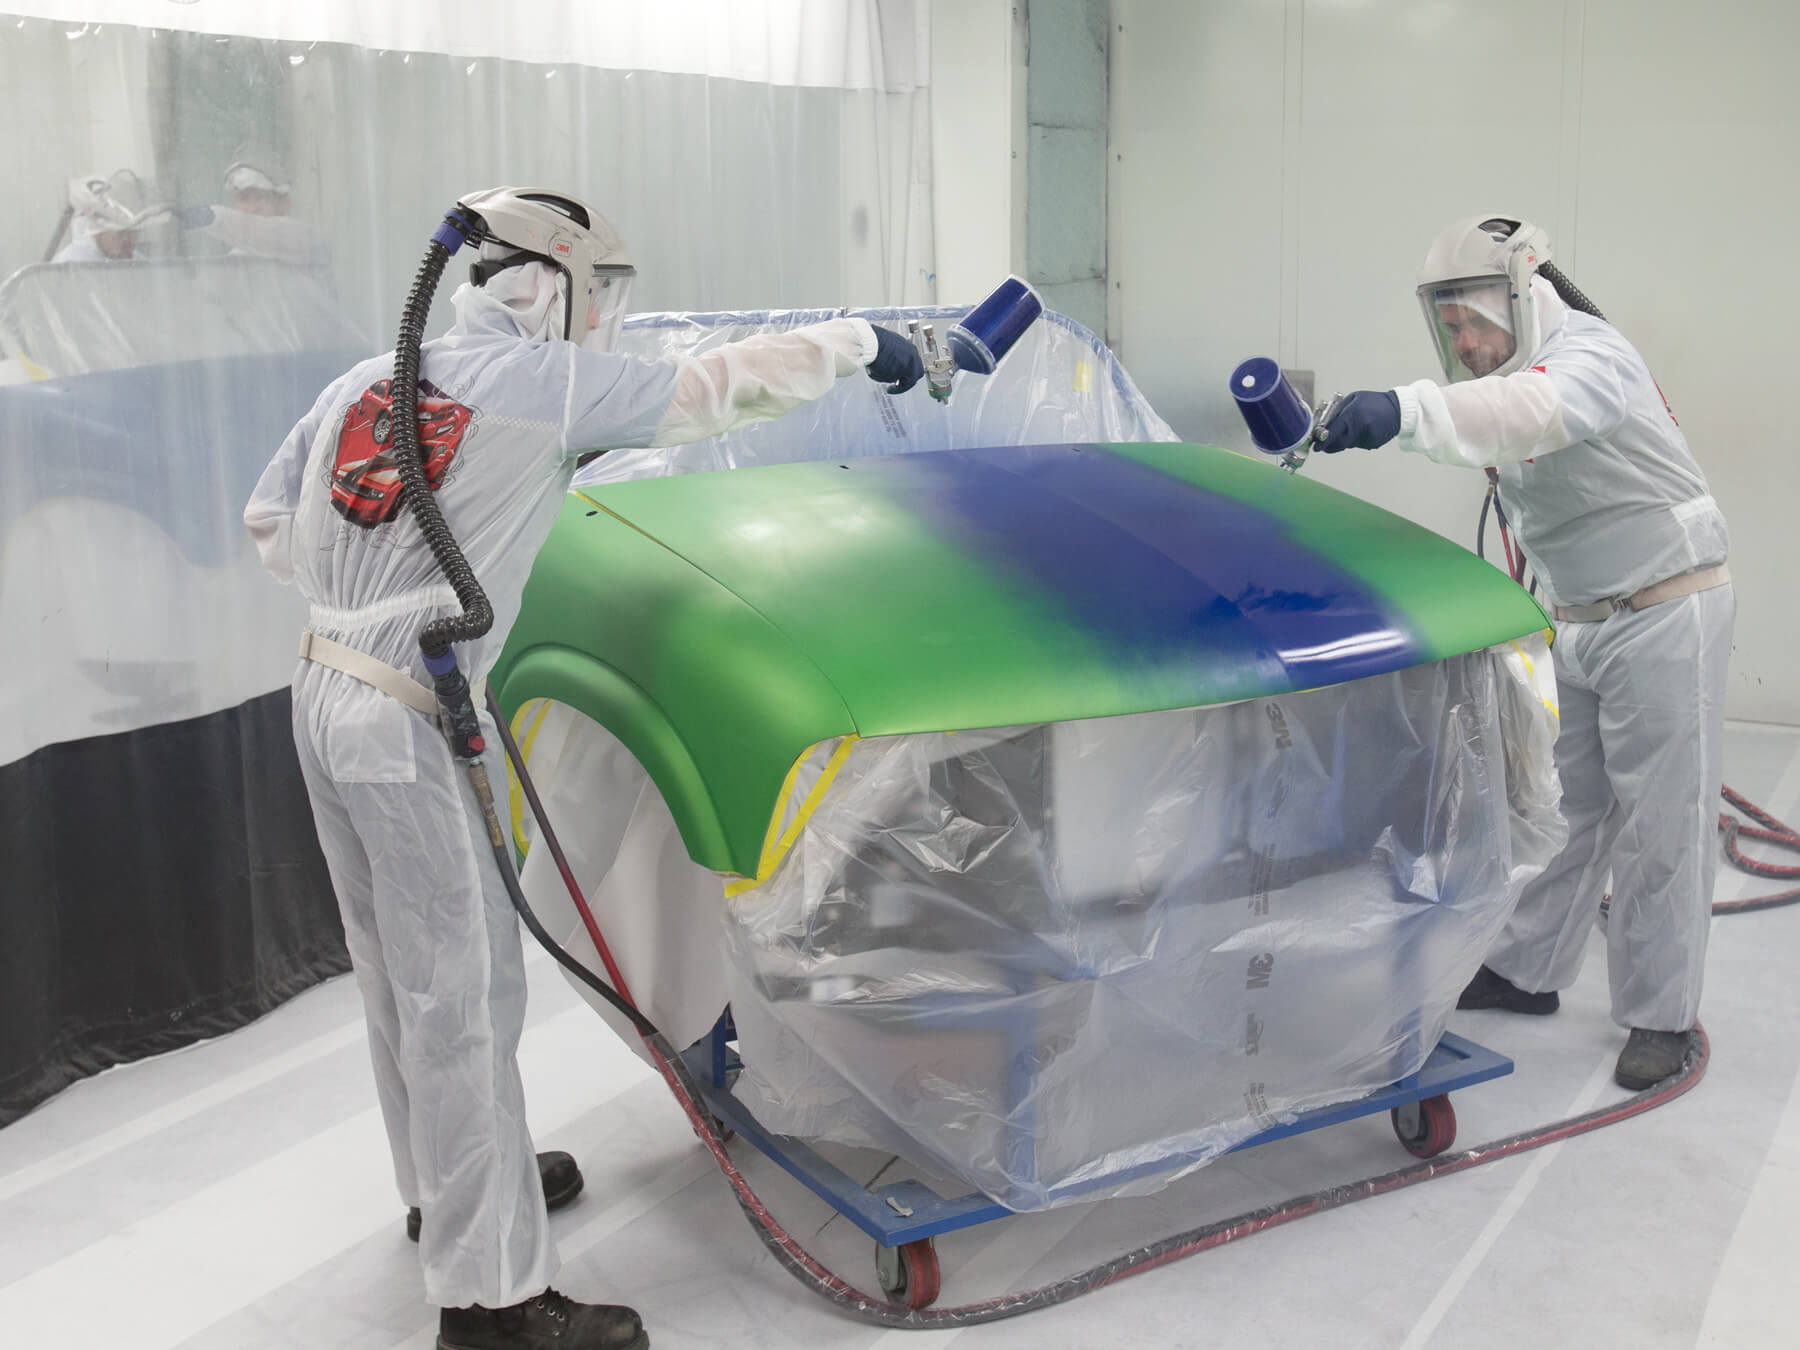 Collision Repair students painting a green car, blue